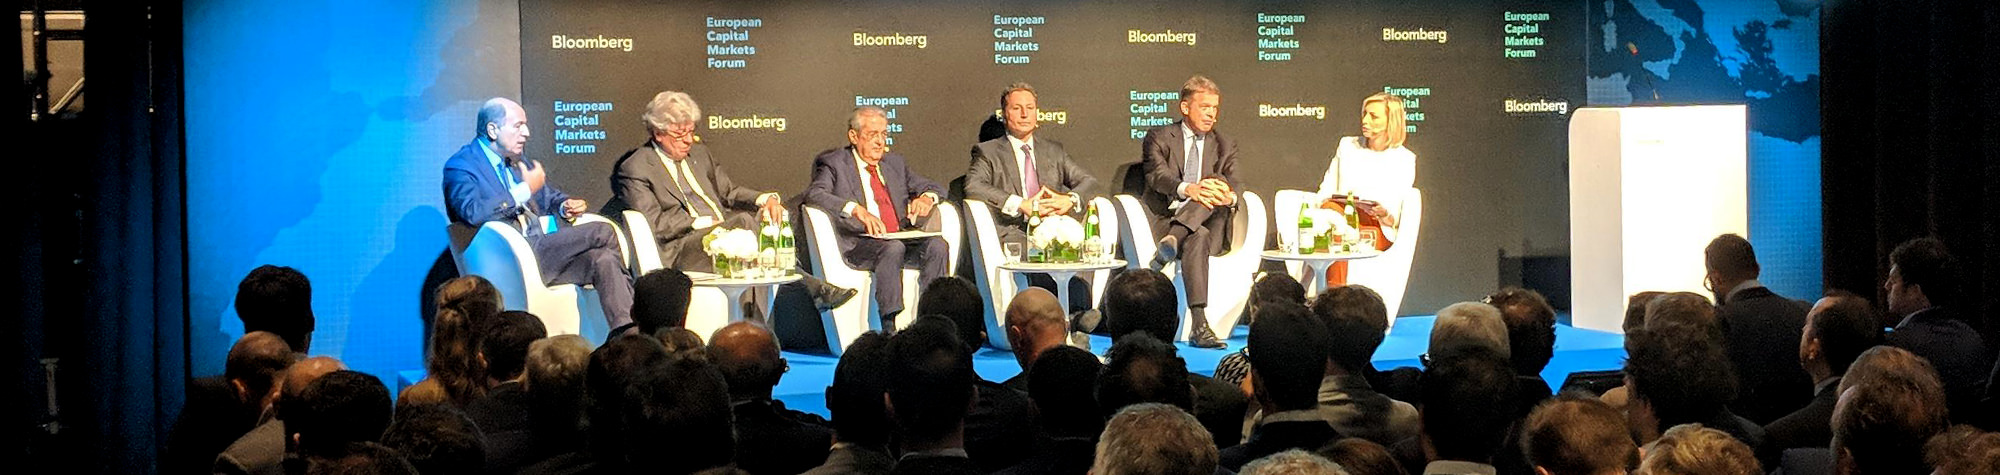 Minister Tria delivers keynote speech at the Bloomberg event